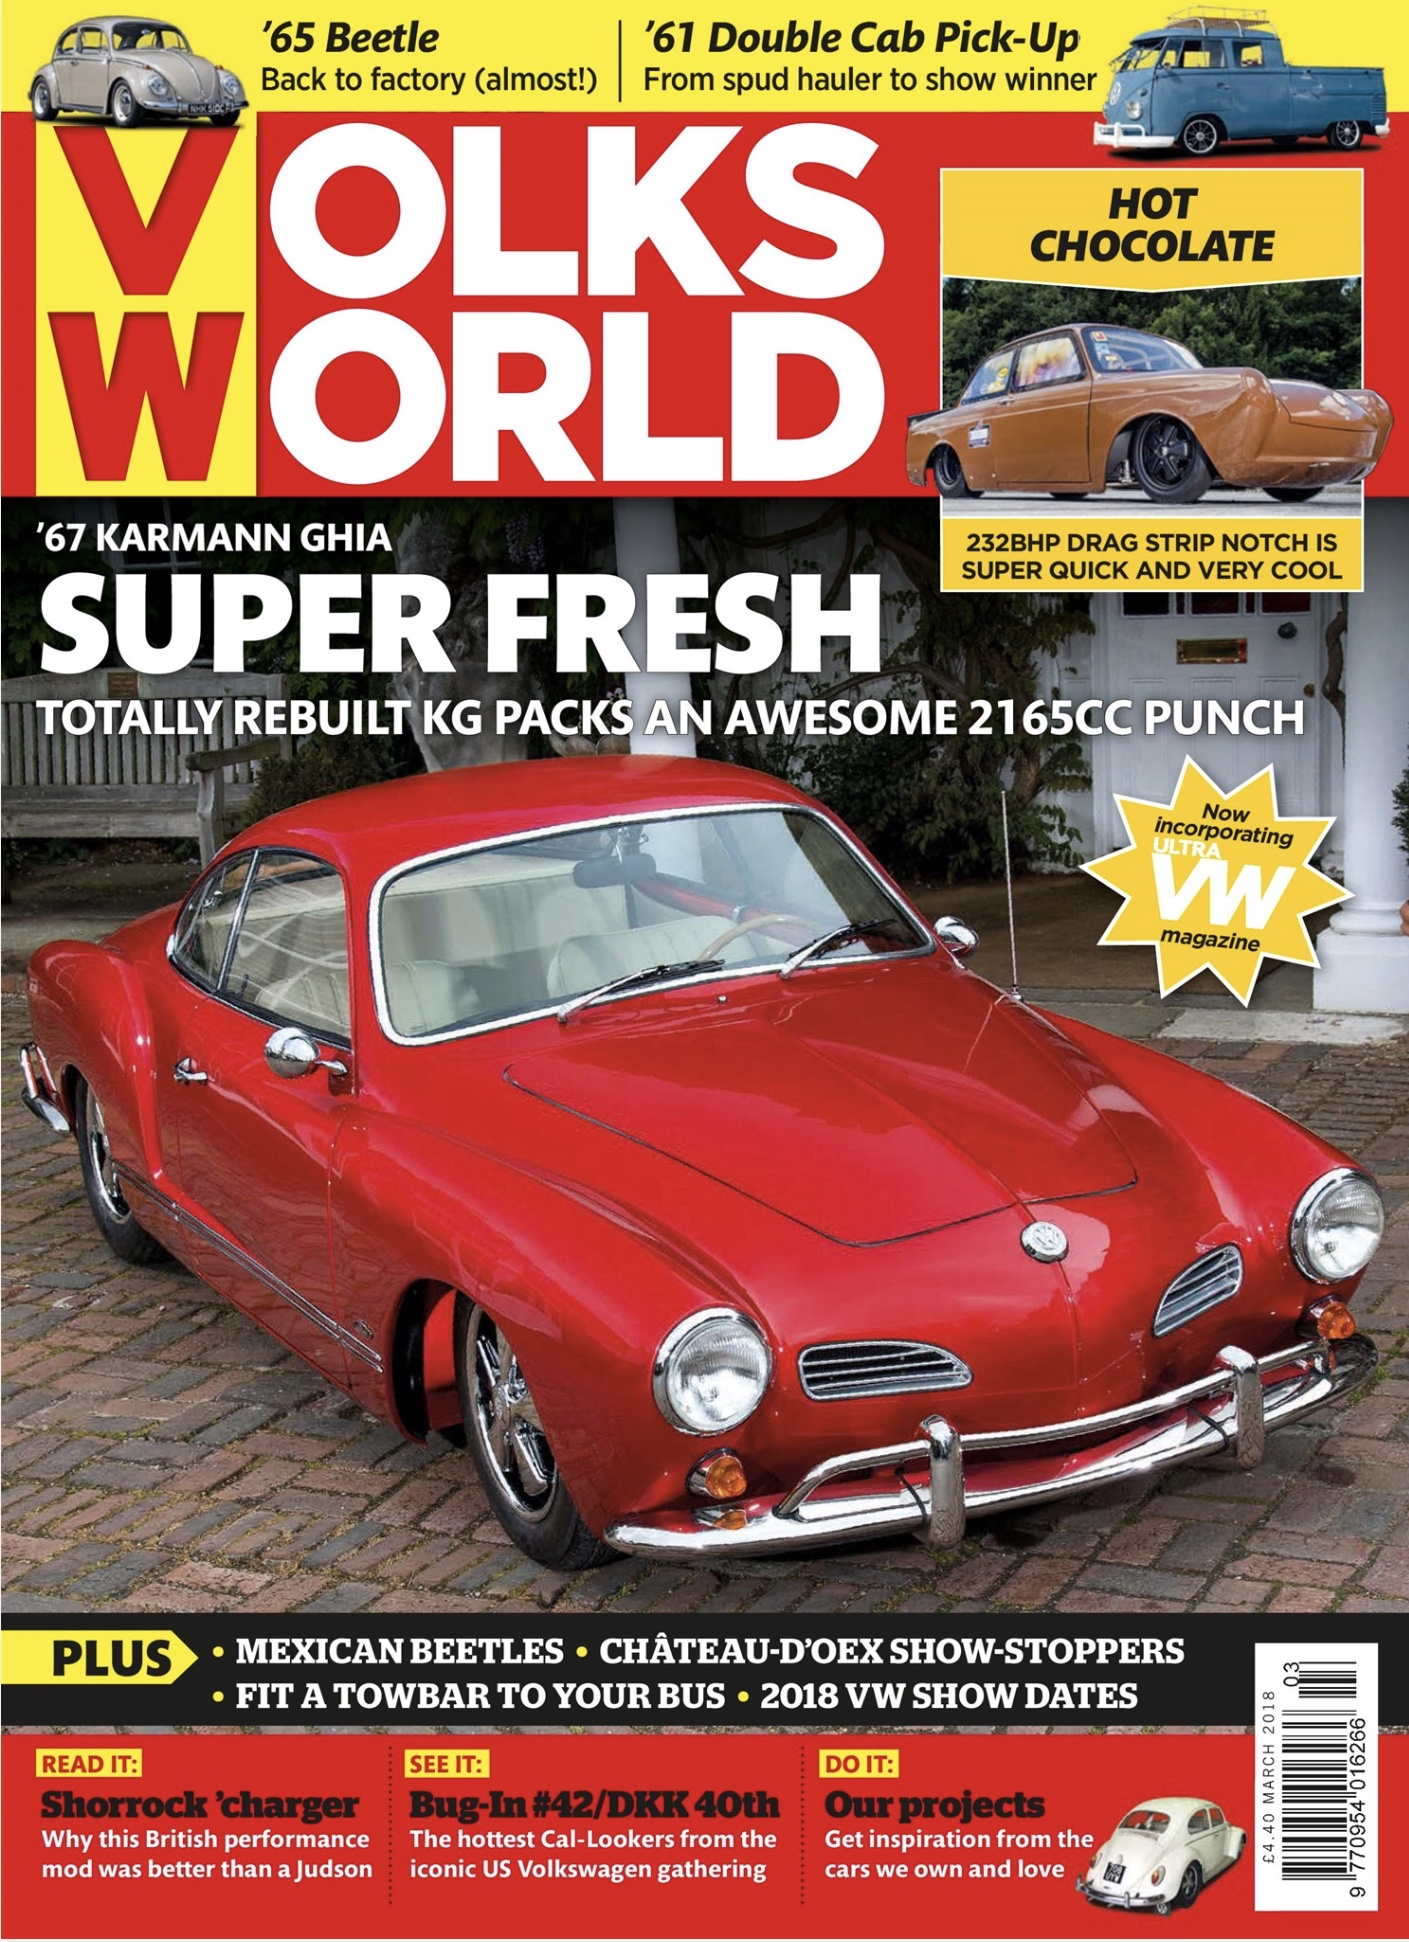 cc-resoration-project-featured-in-volksworld-march-2018.jpeg